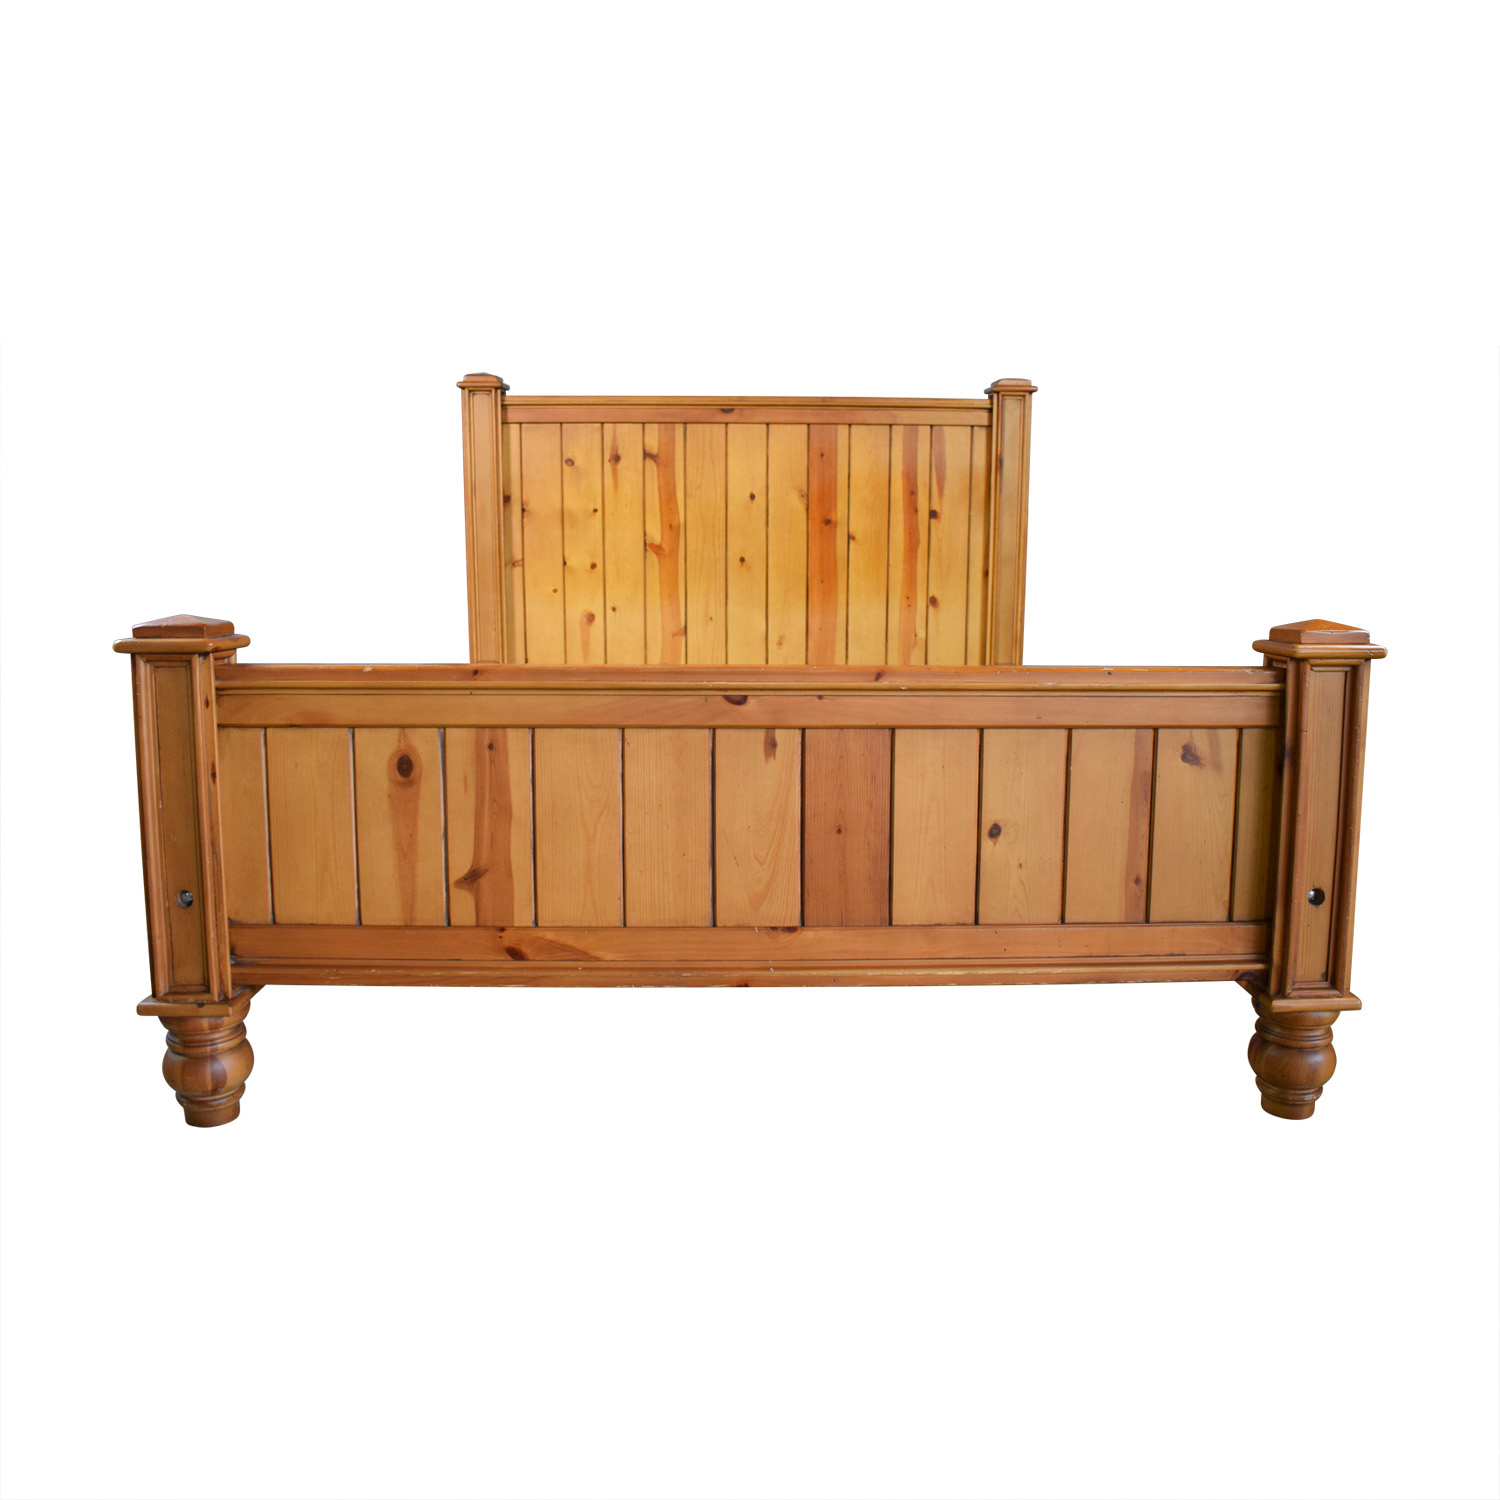 Crate & Barrel Crate & Barrel Rustic Wood Queen Bed Frame for sale